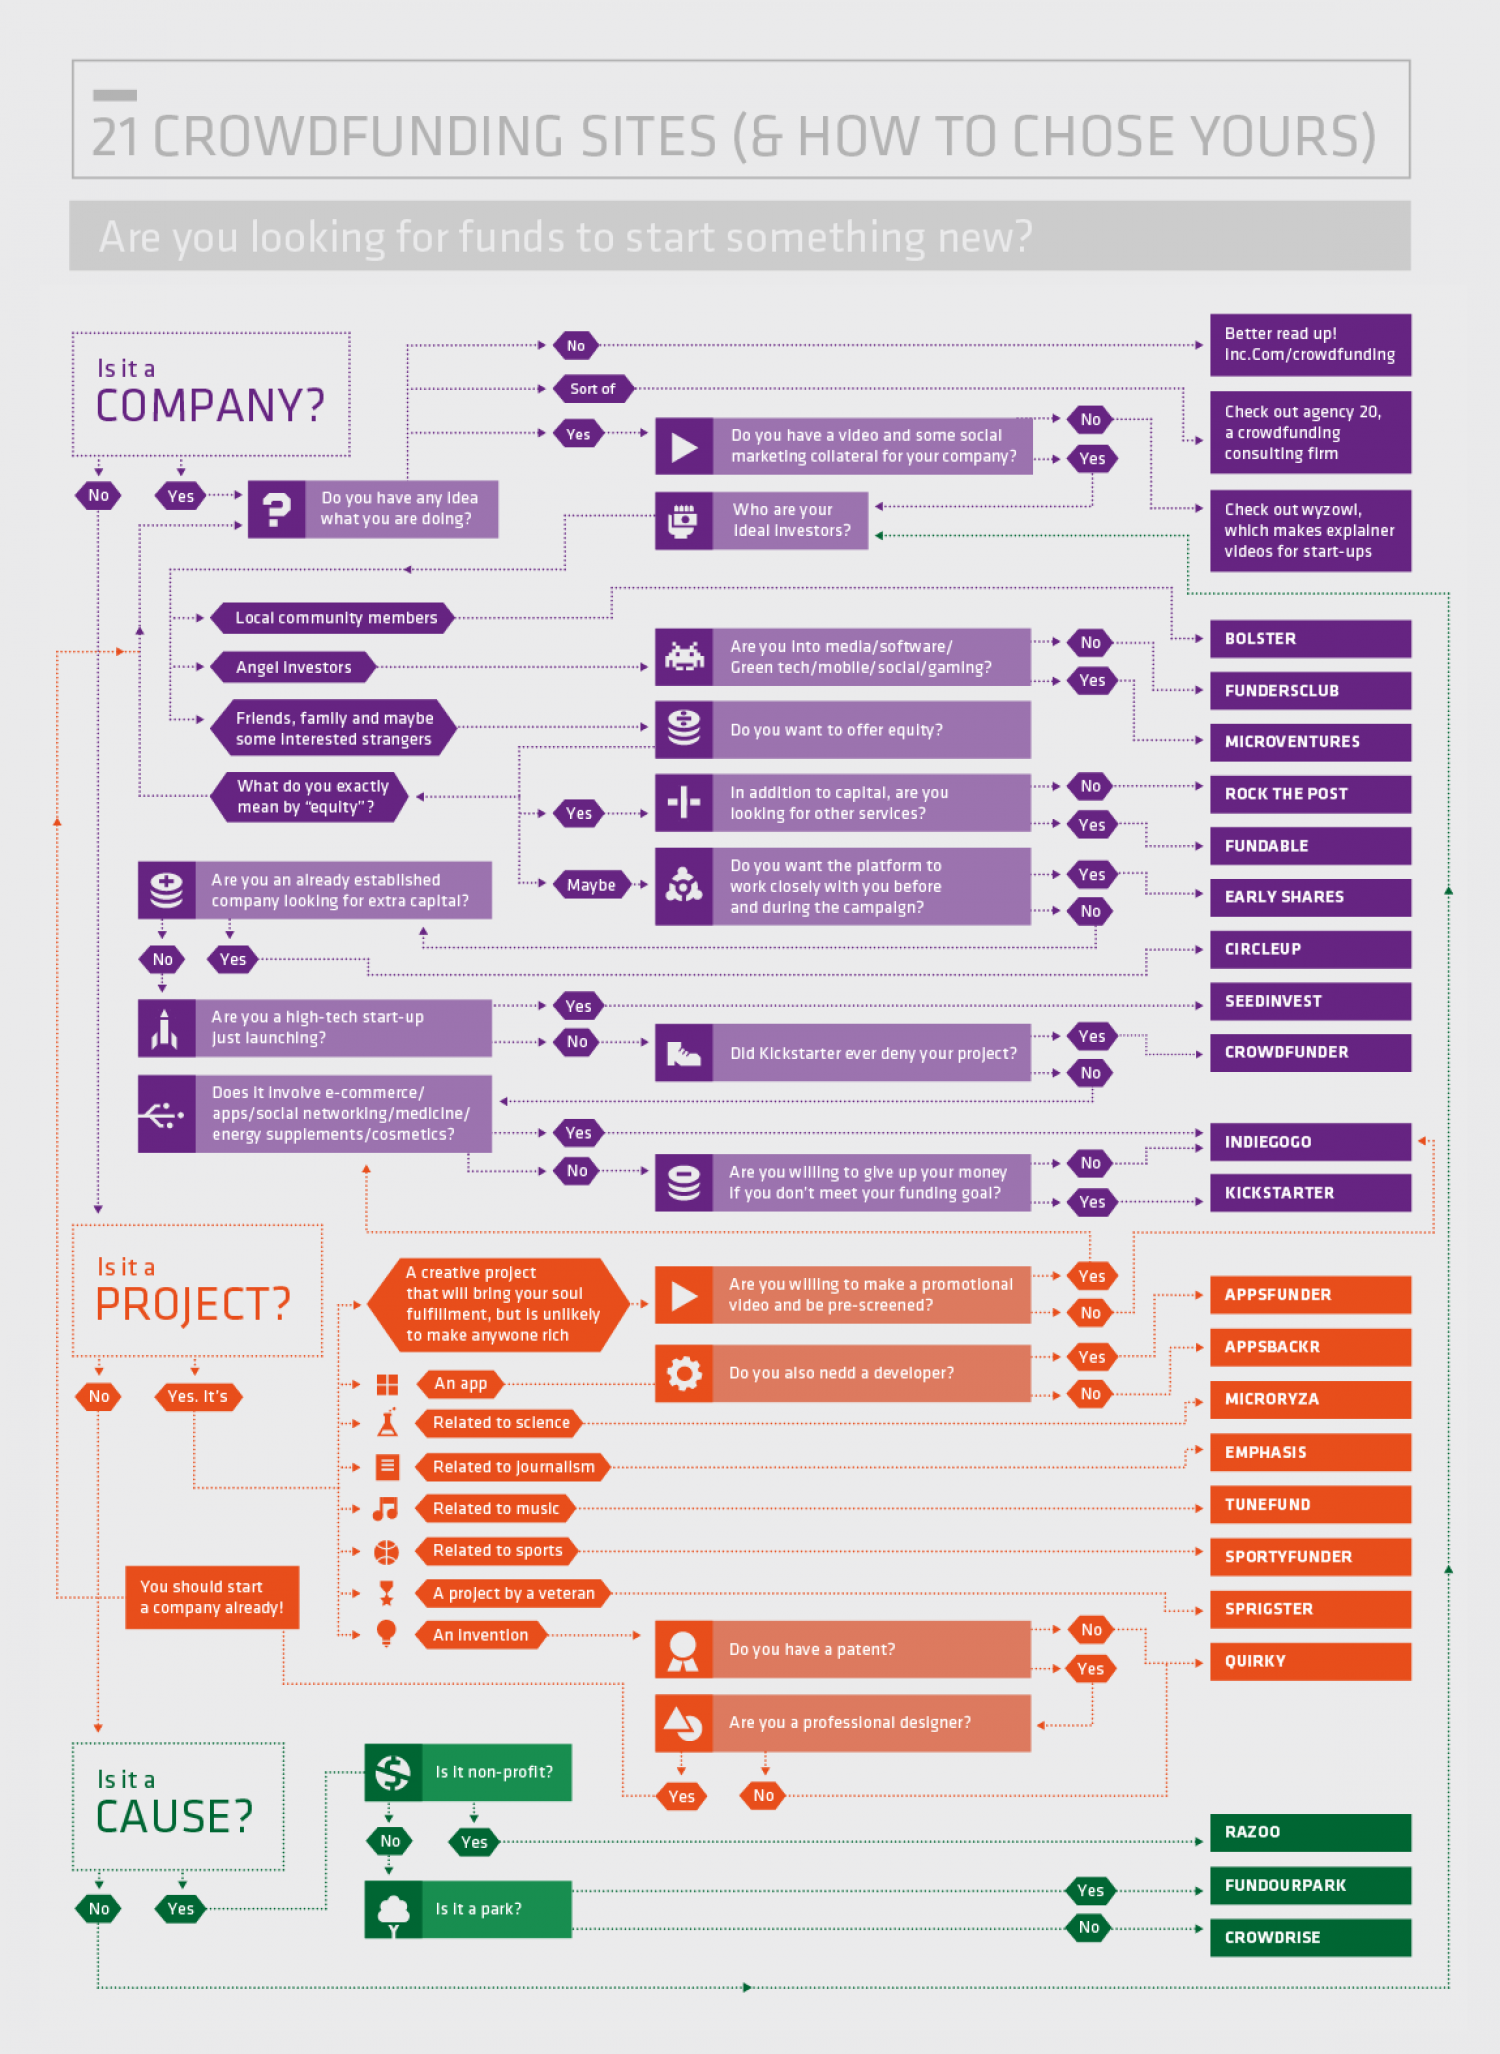 21 Crowdfunding Sites Infographic